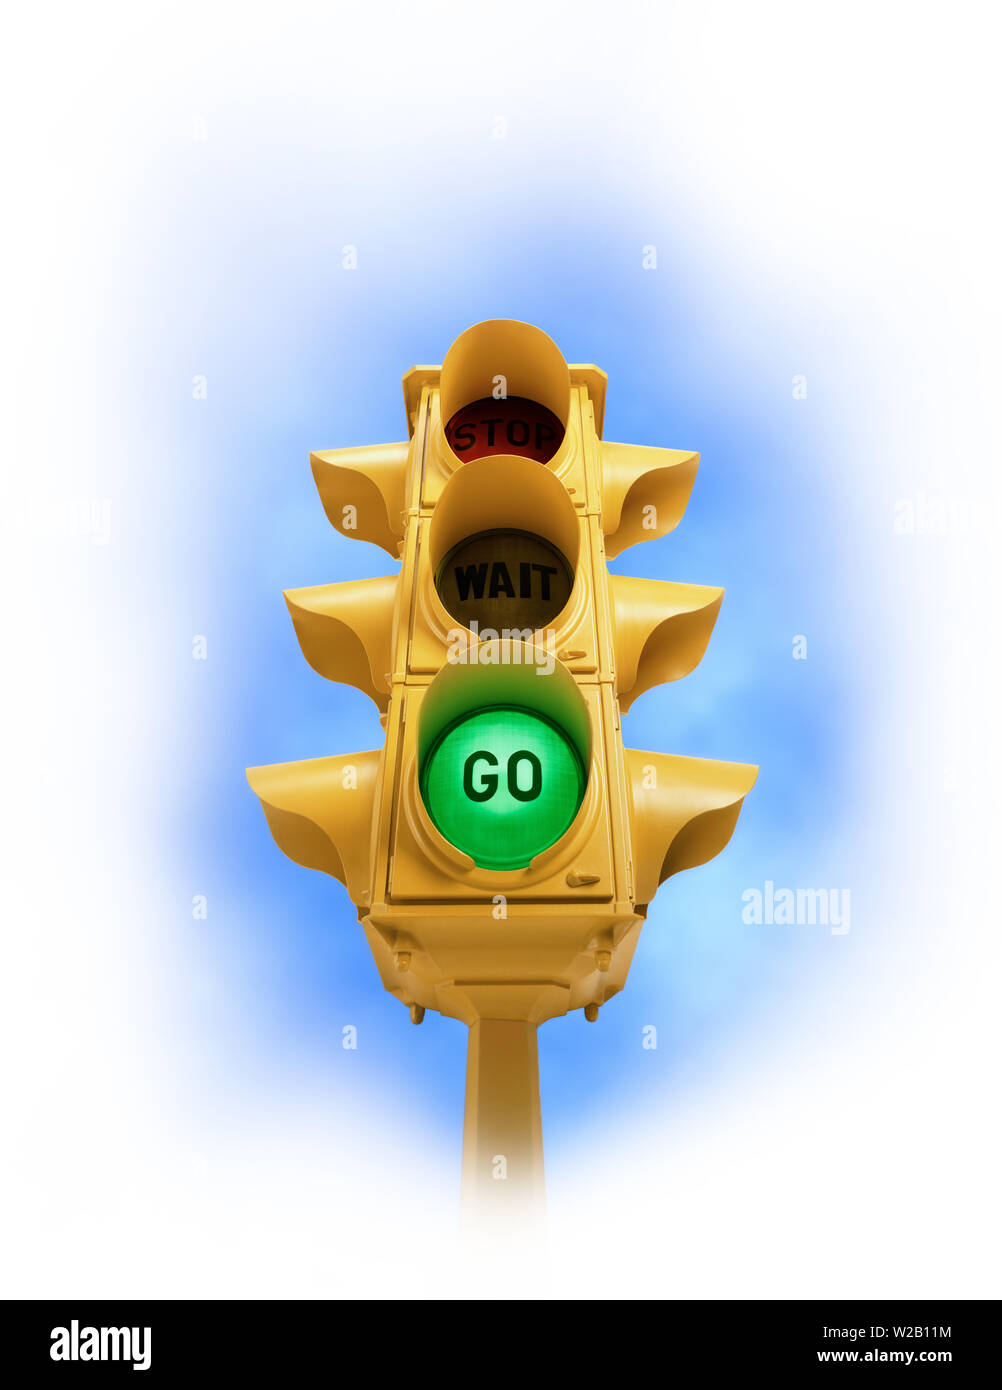 Upward view of  tall vintage yellow traffic signal with green GO light on white vignette background Stock Photo